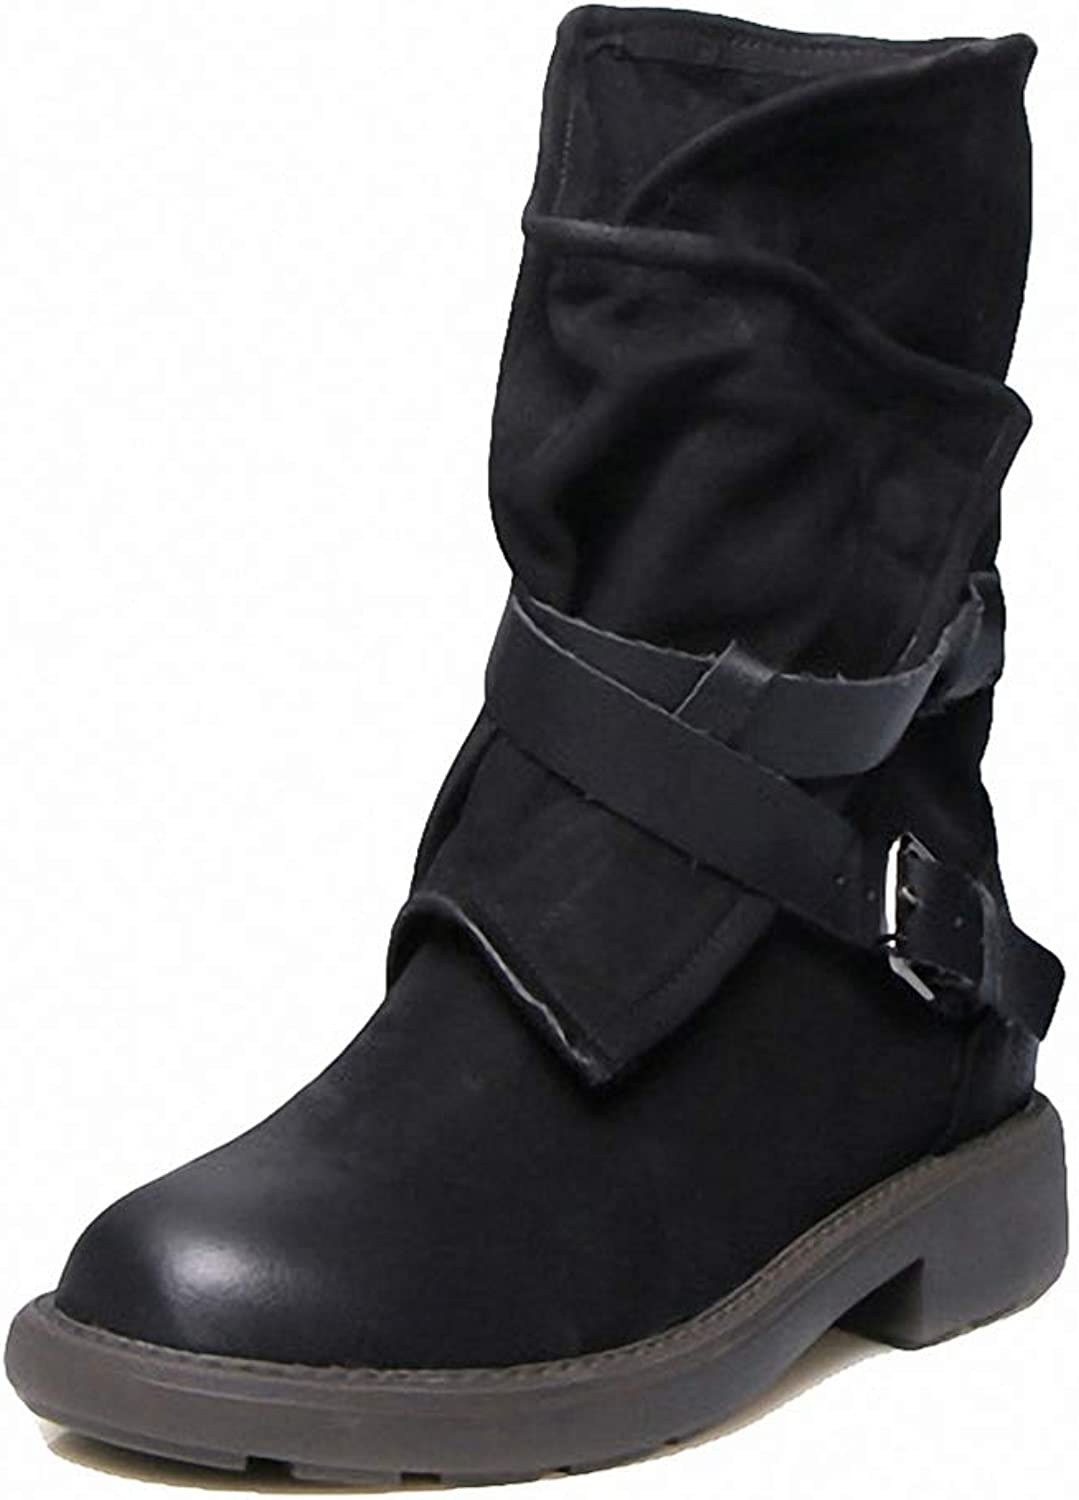 York Zhu Women Boots,Buckle Strap Slouchy Soft Low Heel Riding Boots